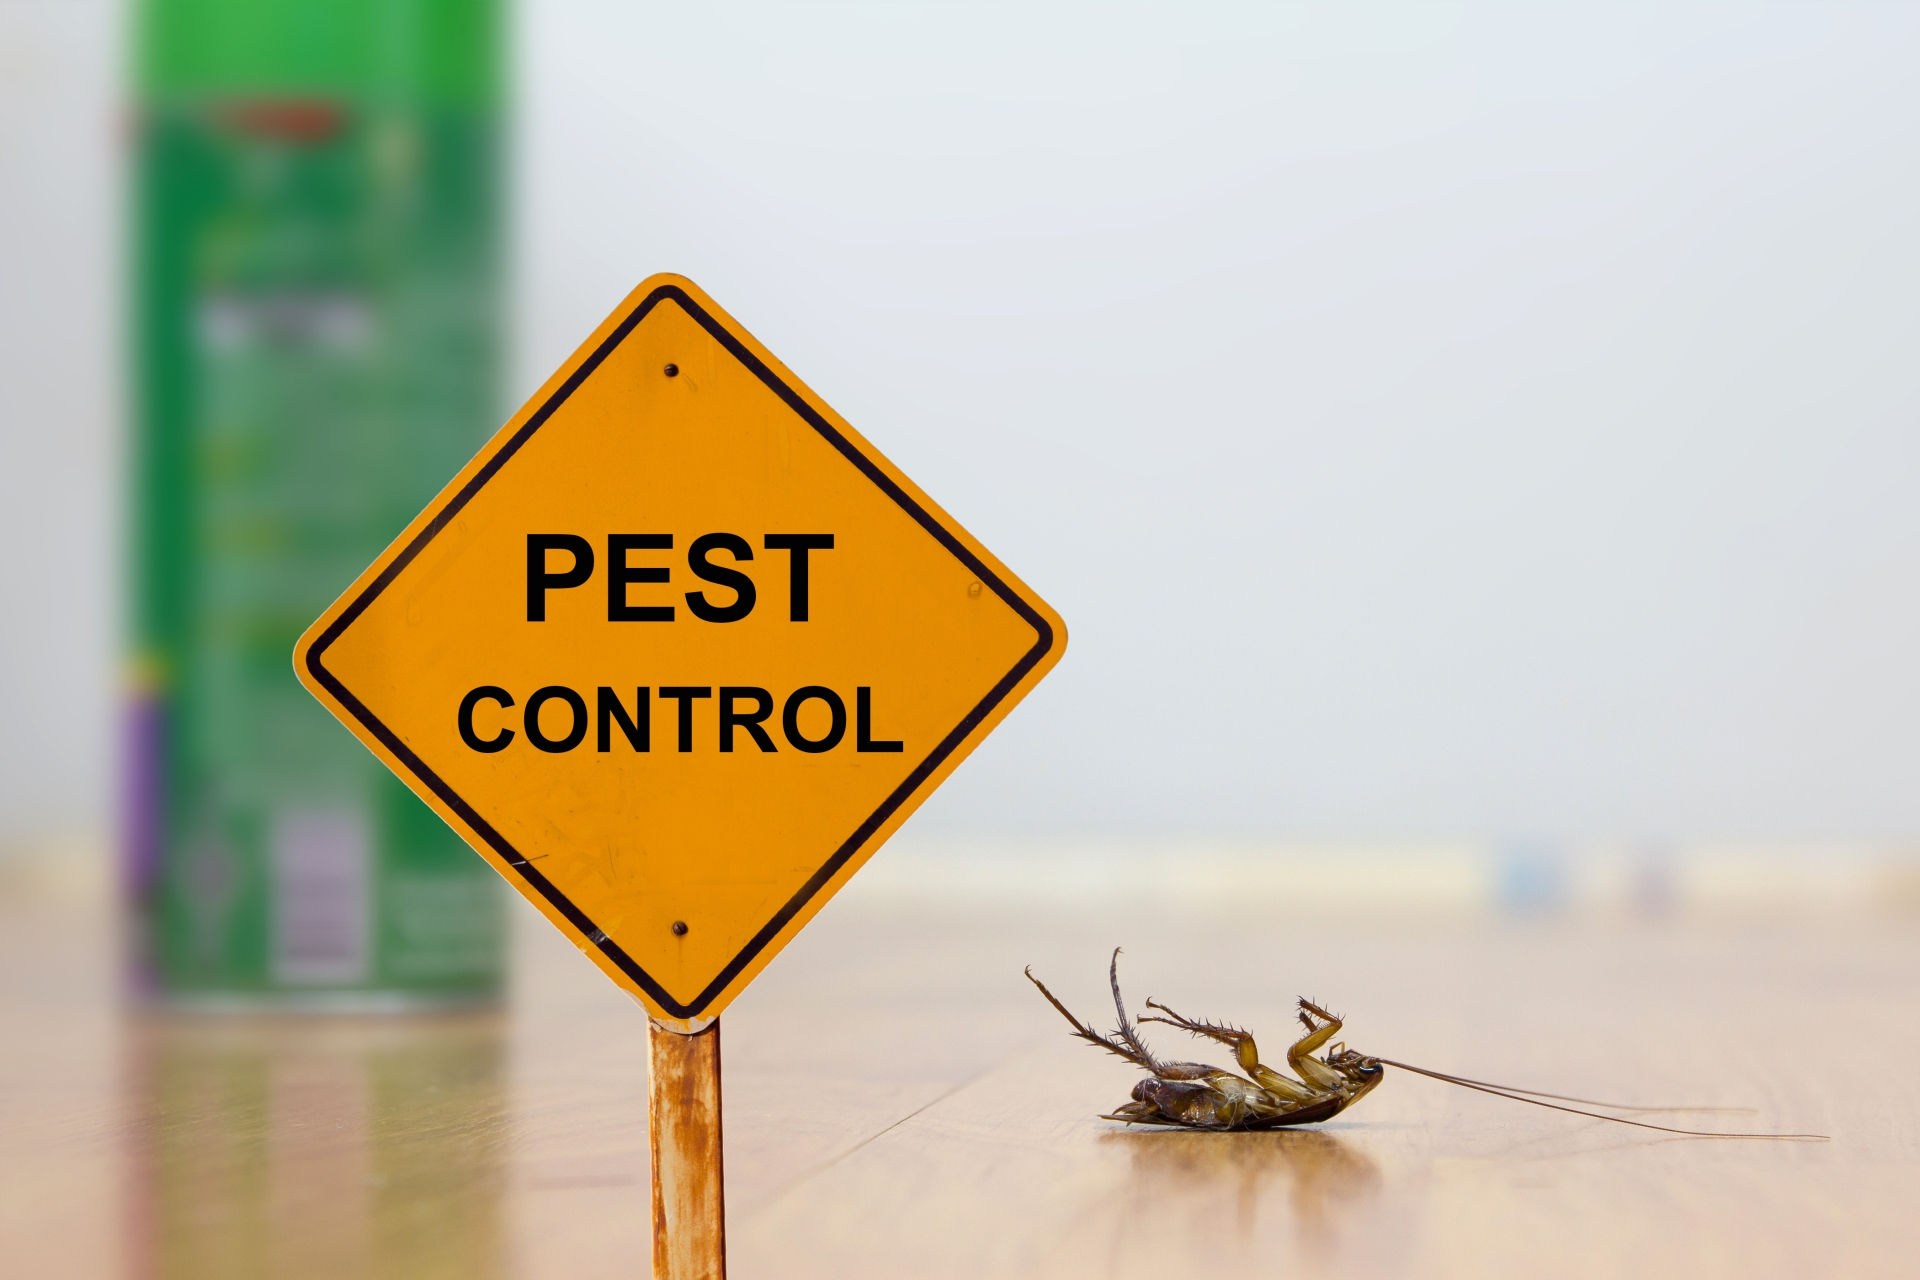 24 Hour Pest Control, Pest Control in Ilford, Loxford, IG1. Call Now 020 8166 9746